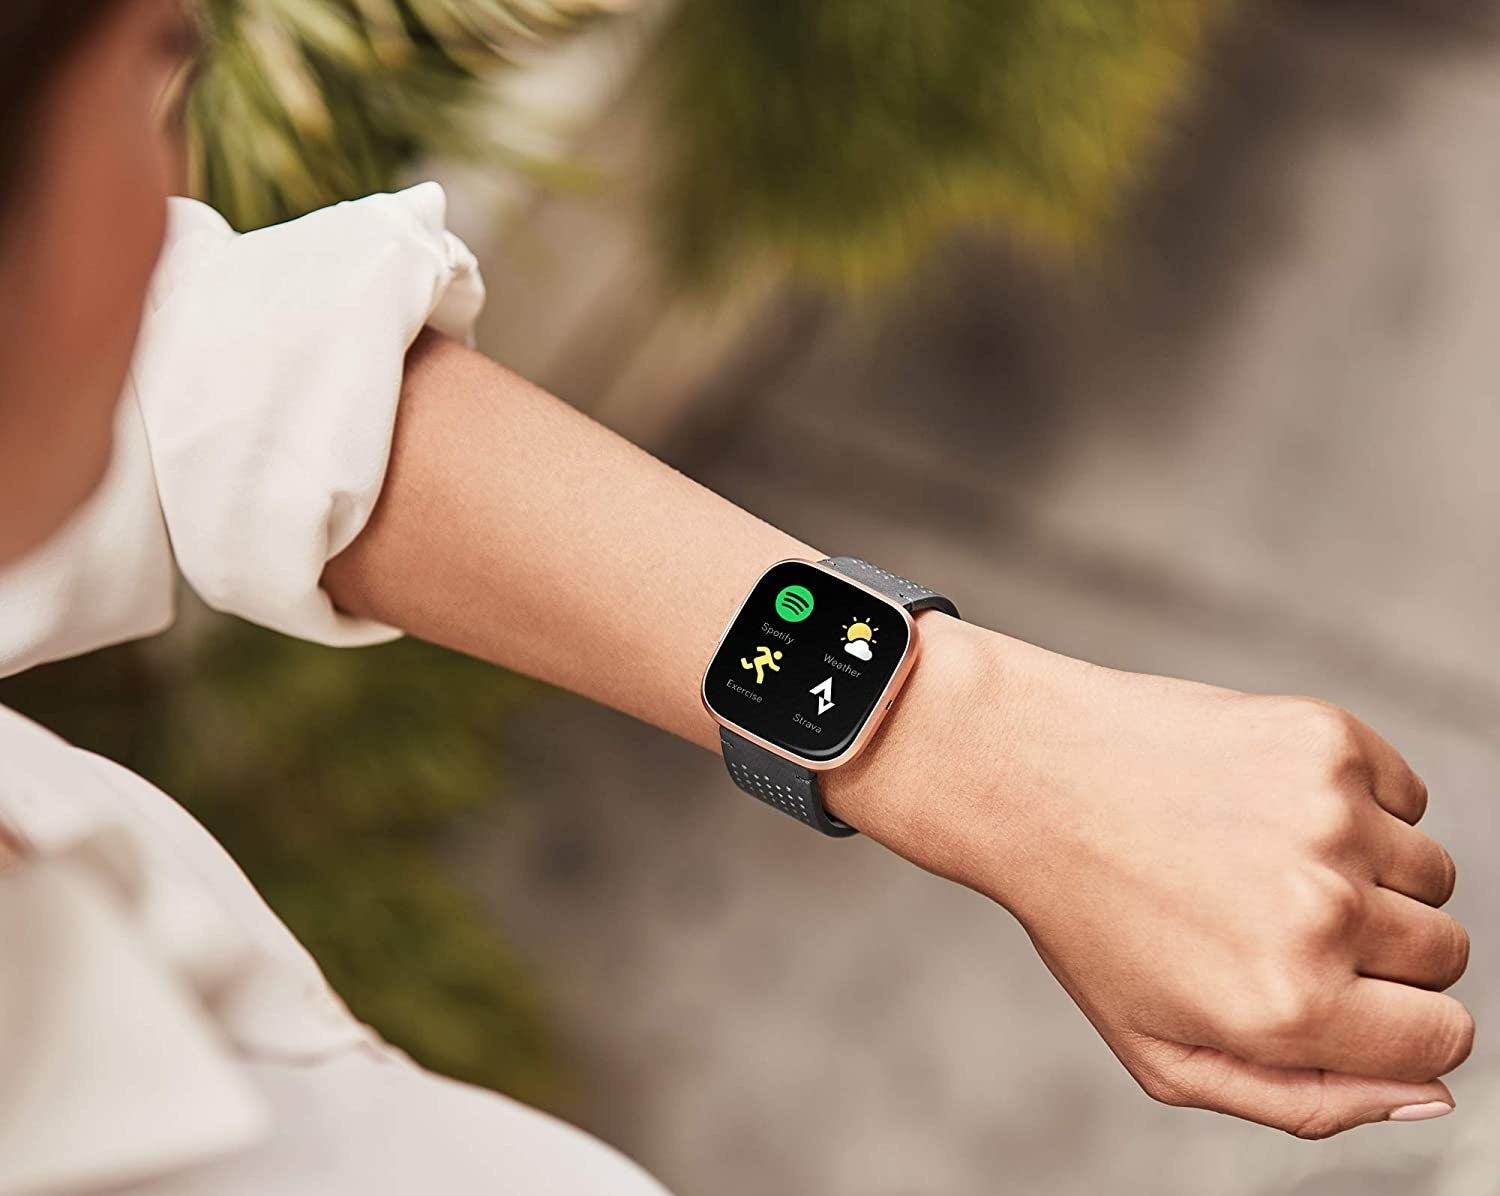 A person wearing a smart watch on their wrist